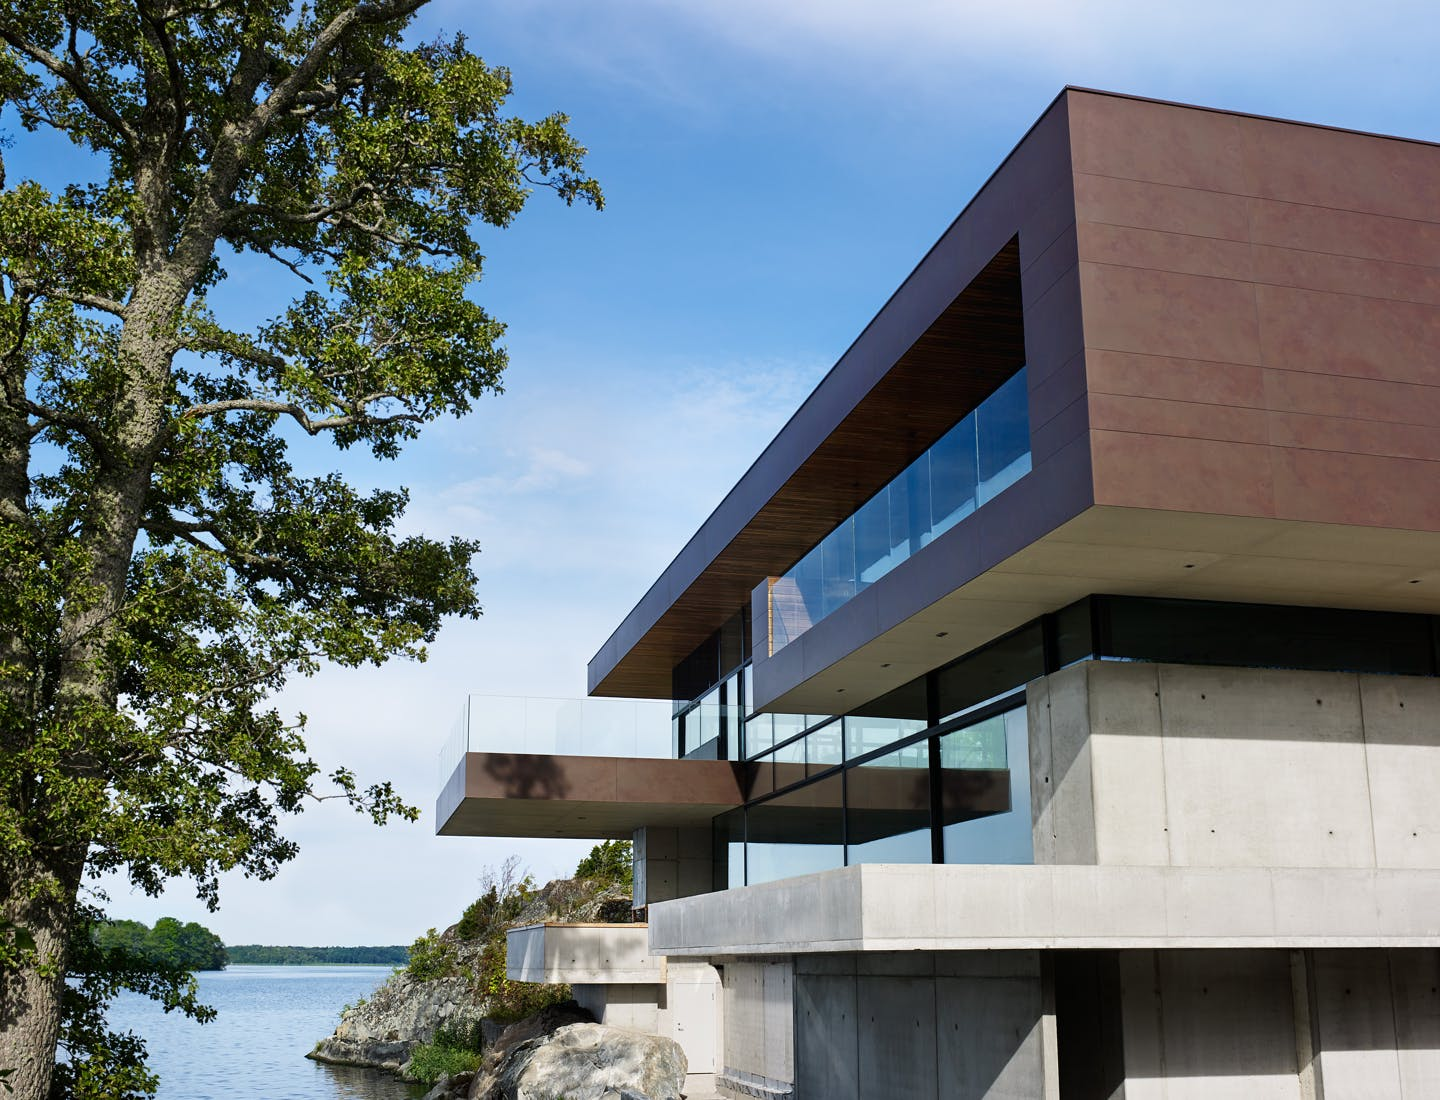 The skin of the structure  - Skallan house 43